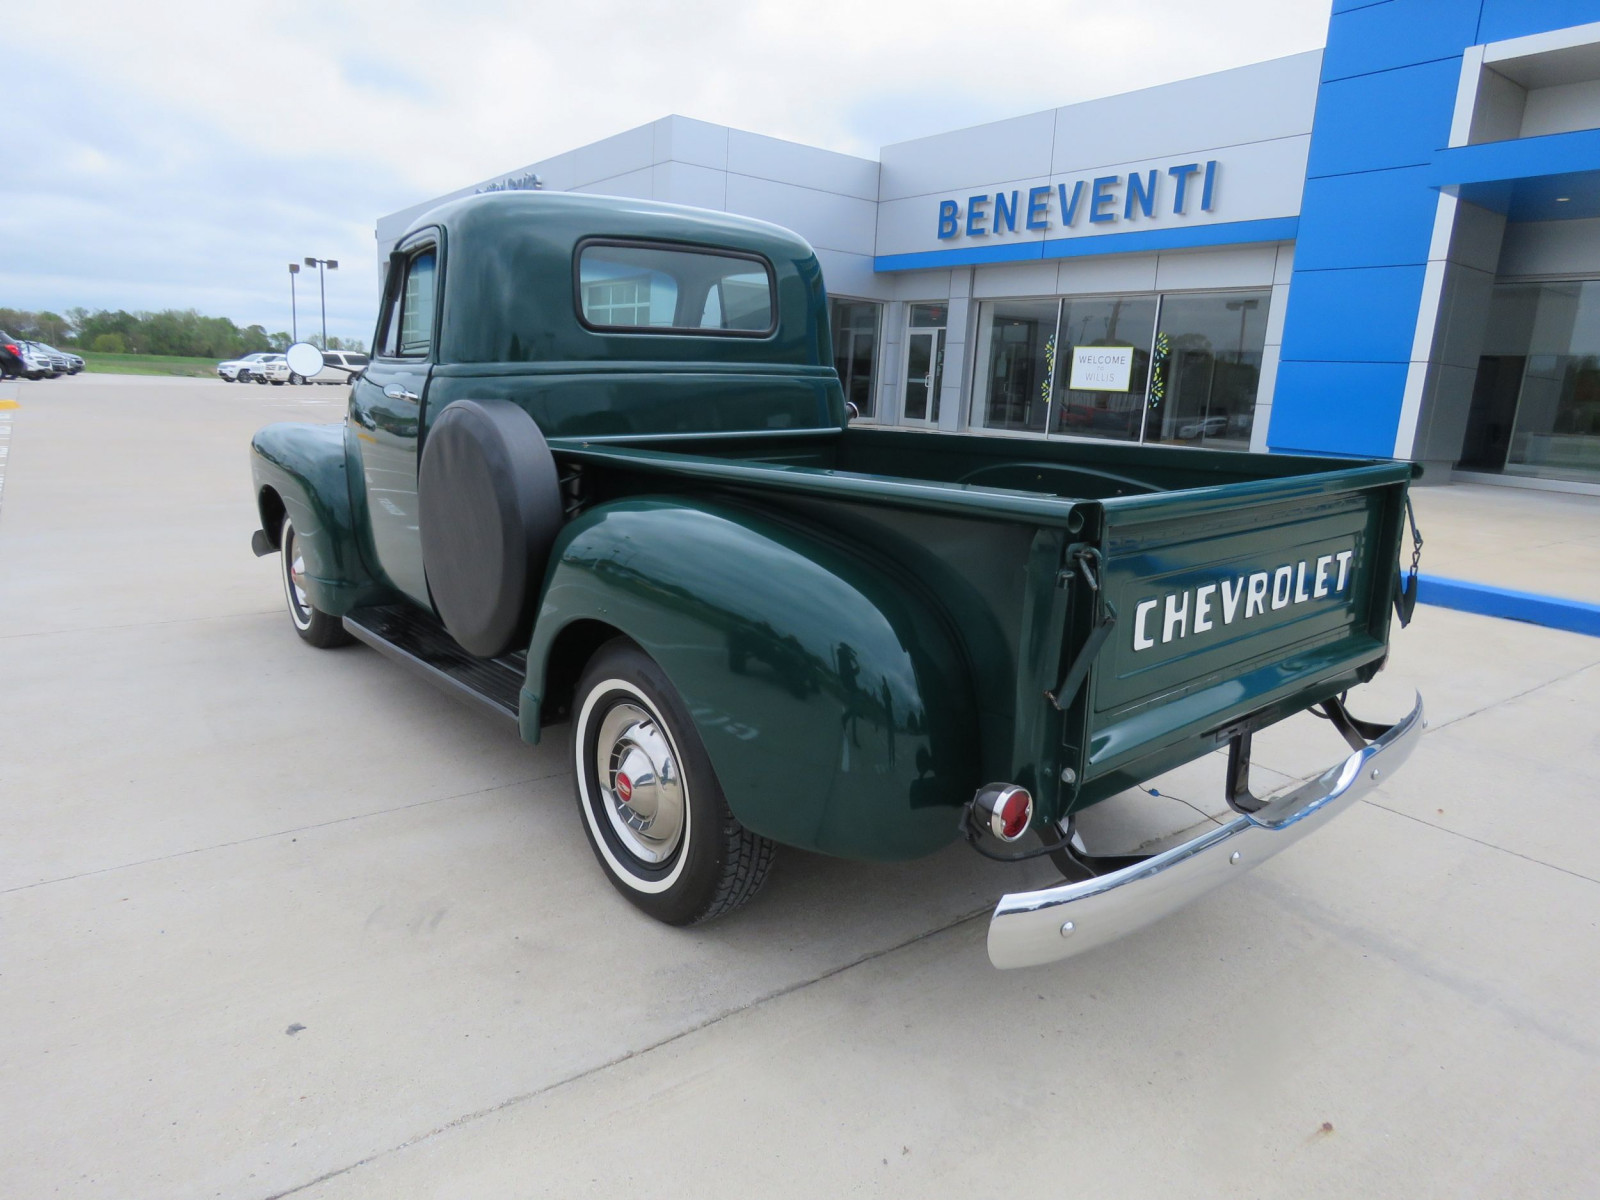 1954 Chevrolet 3100 Series Pickup - Image 10